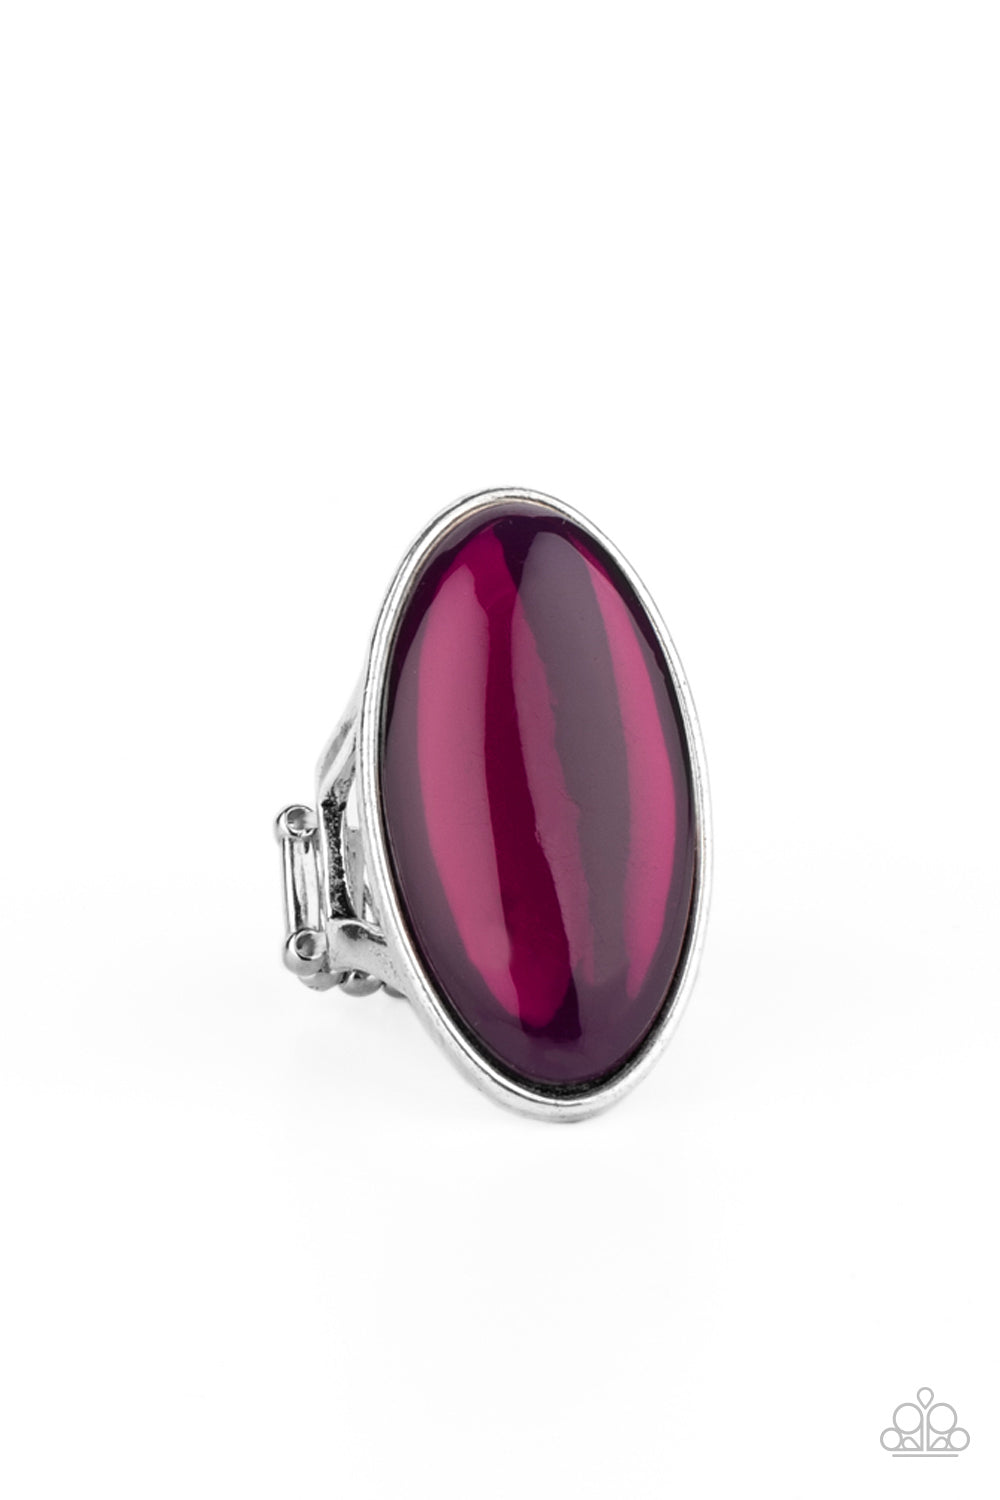 five-dollar-jewelry-mystic-moon-purple-ring-paparazzi-accessories